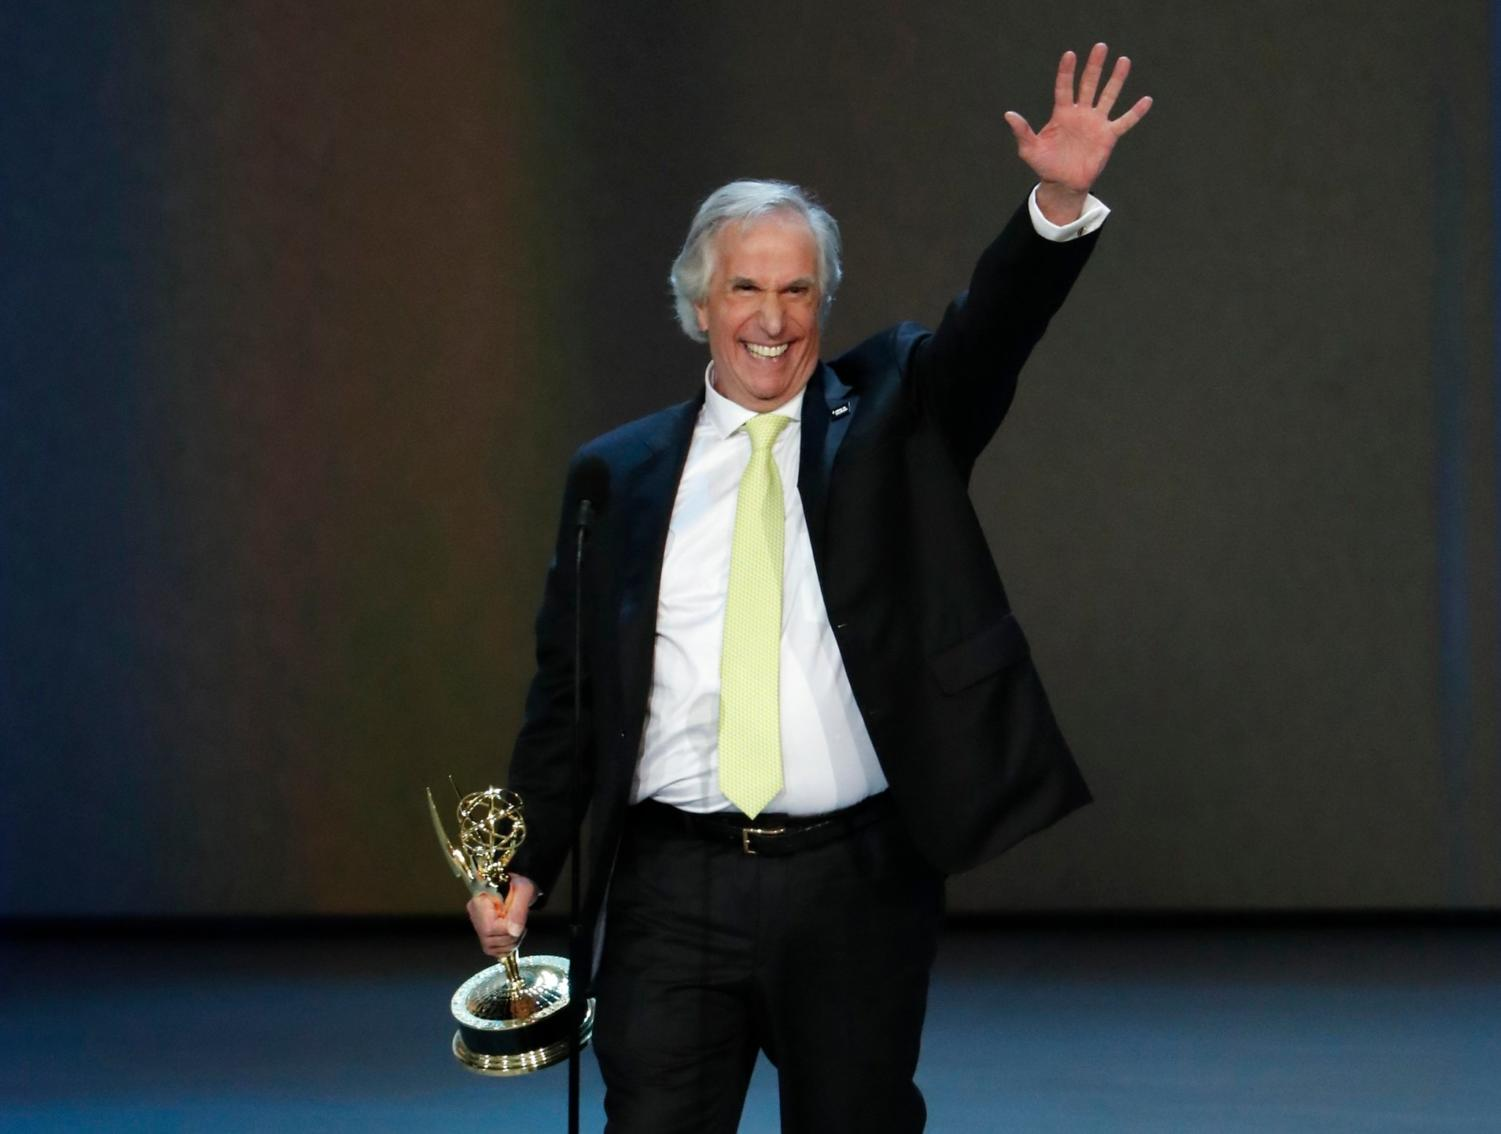 Henry Winkler, AKA the Fonz, won for his role as a drama instructor in